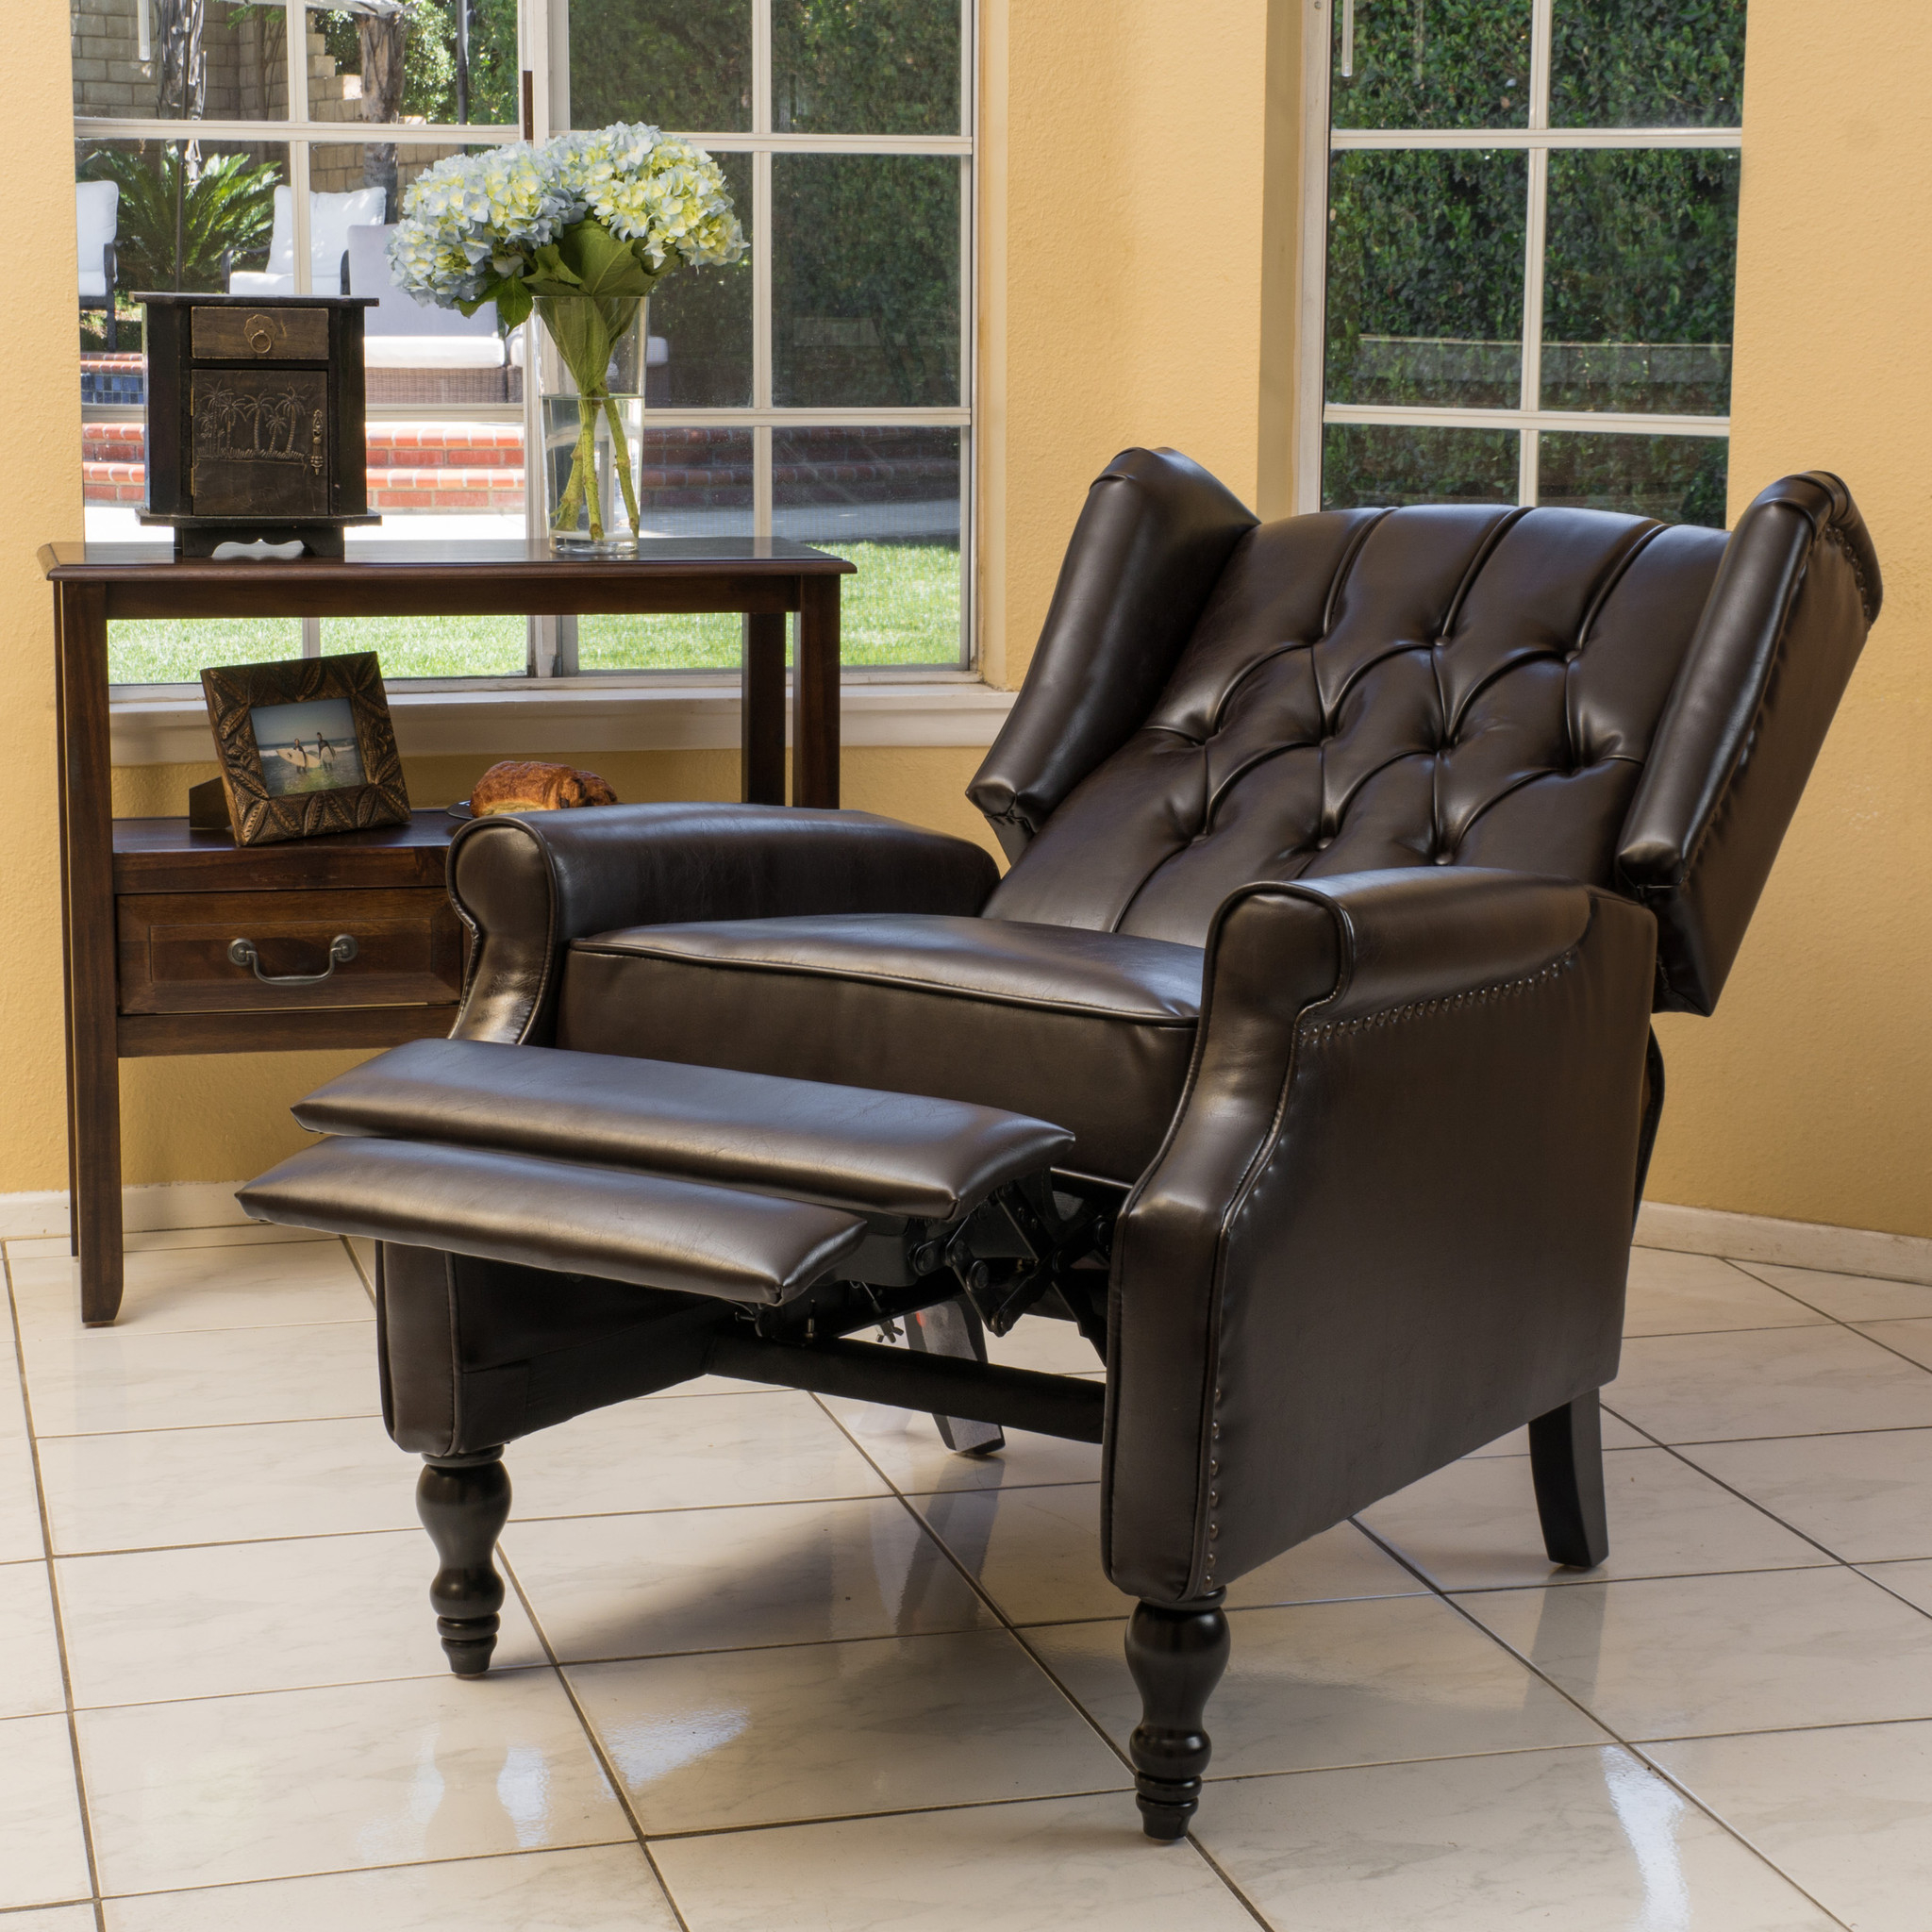 Temzyl Contemporary Brown Leather Recliner Chair 5840725ee2246170dc78e7a3